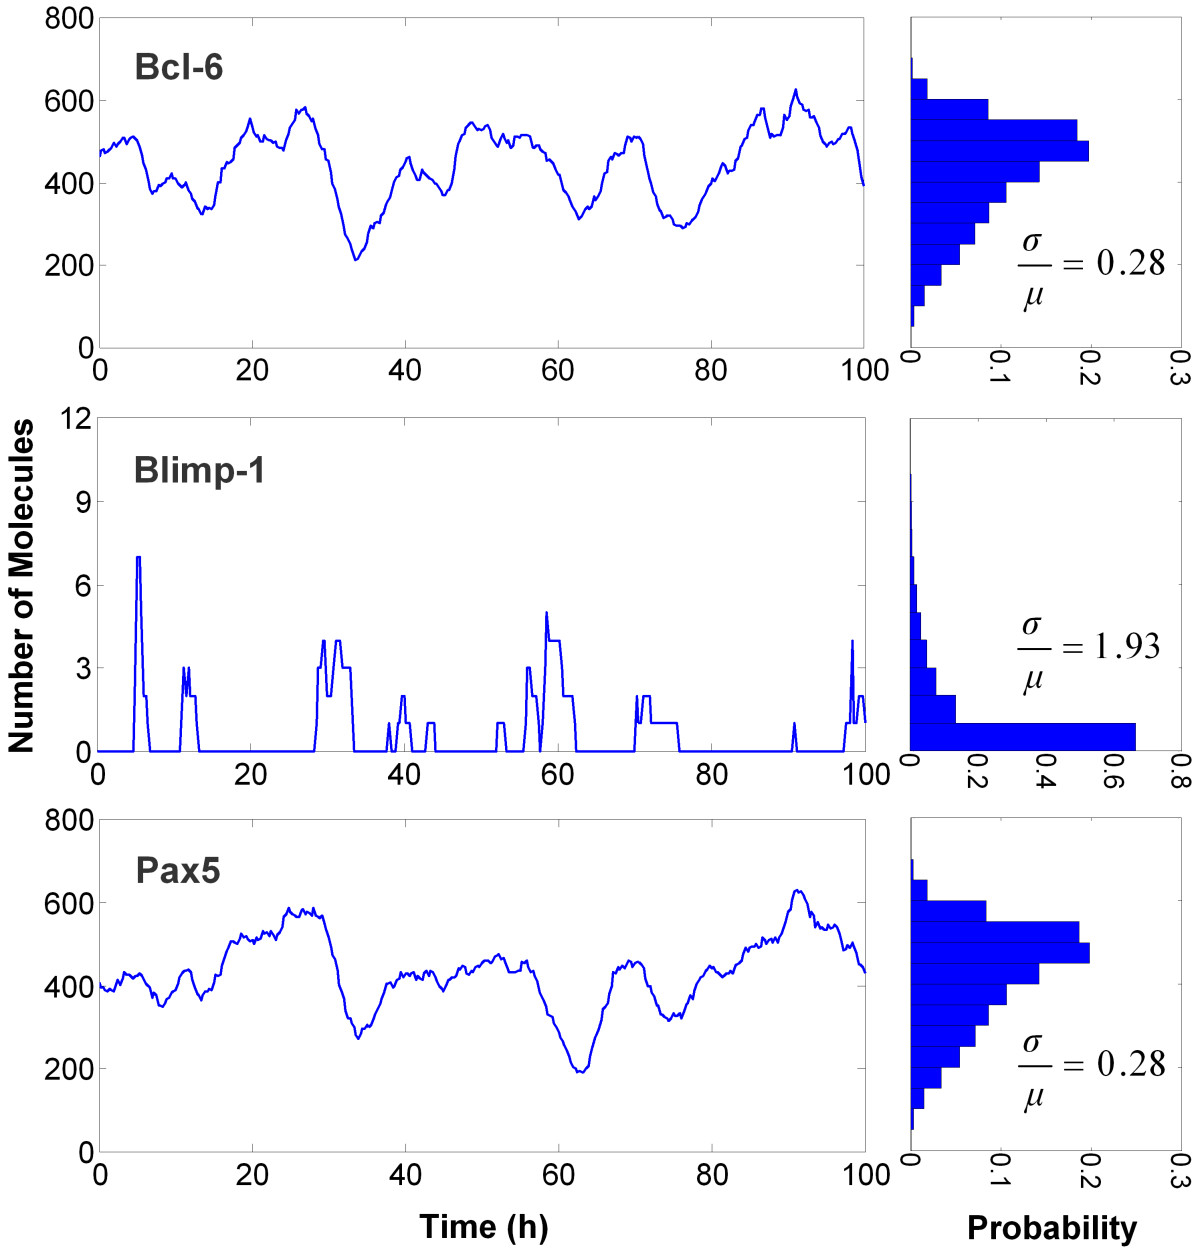 http://static-content.springer.com/image/art%3A10.1186%2F1752-0509-4-40/MediaObjects/12918_2009_Article_429_Fig3_HTML.jpg